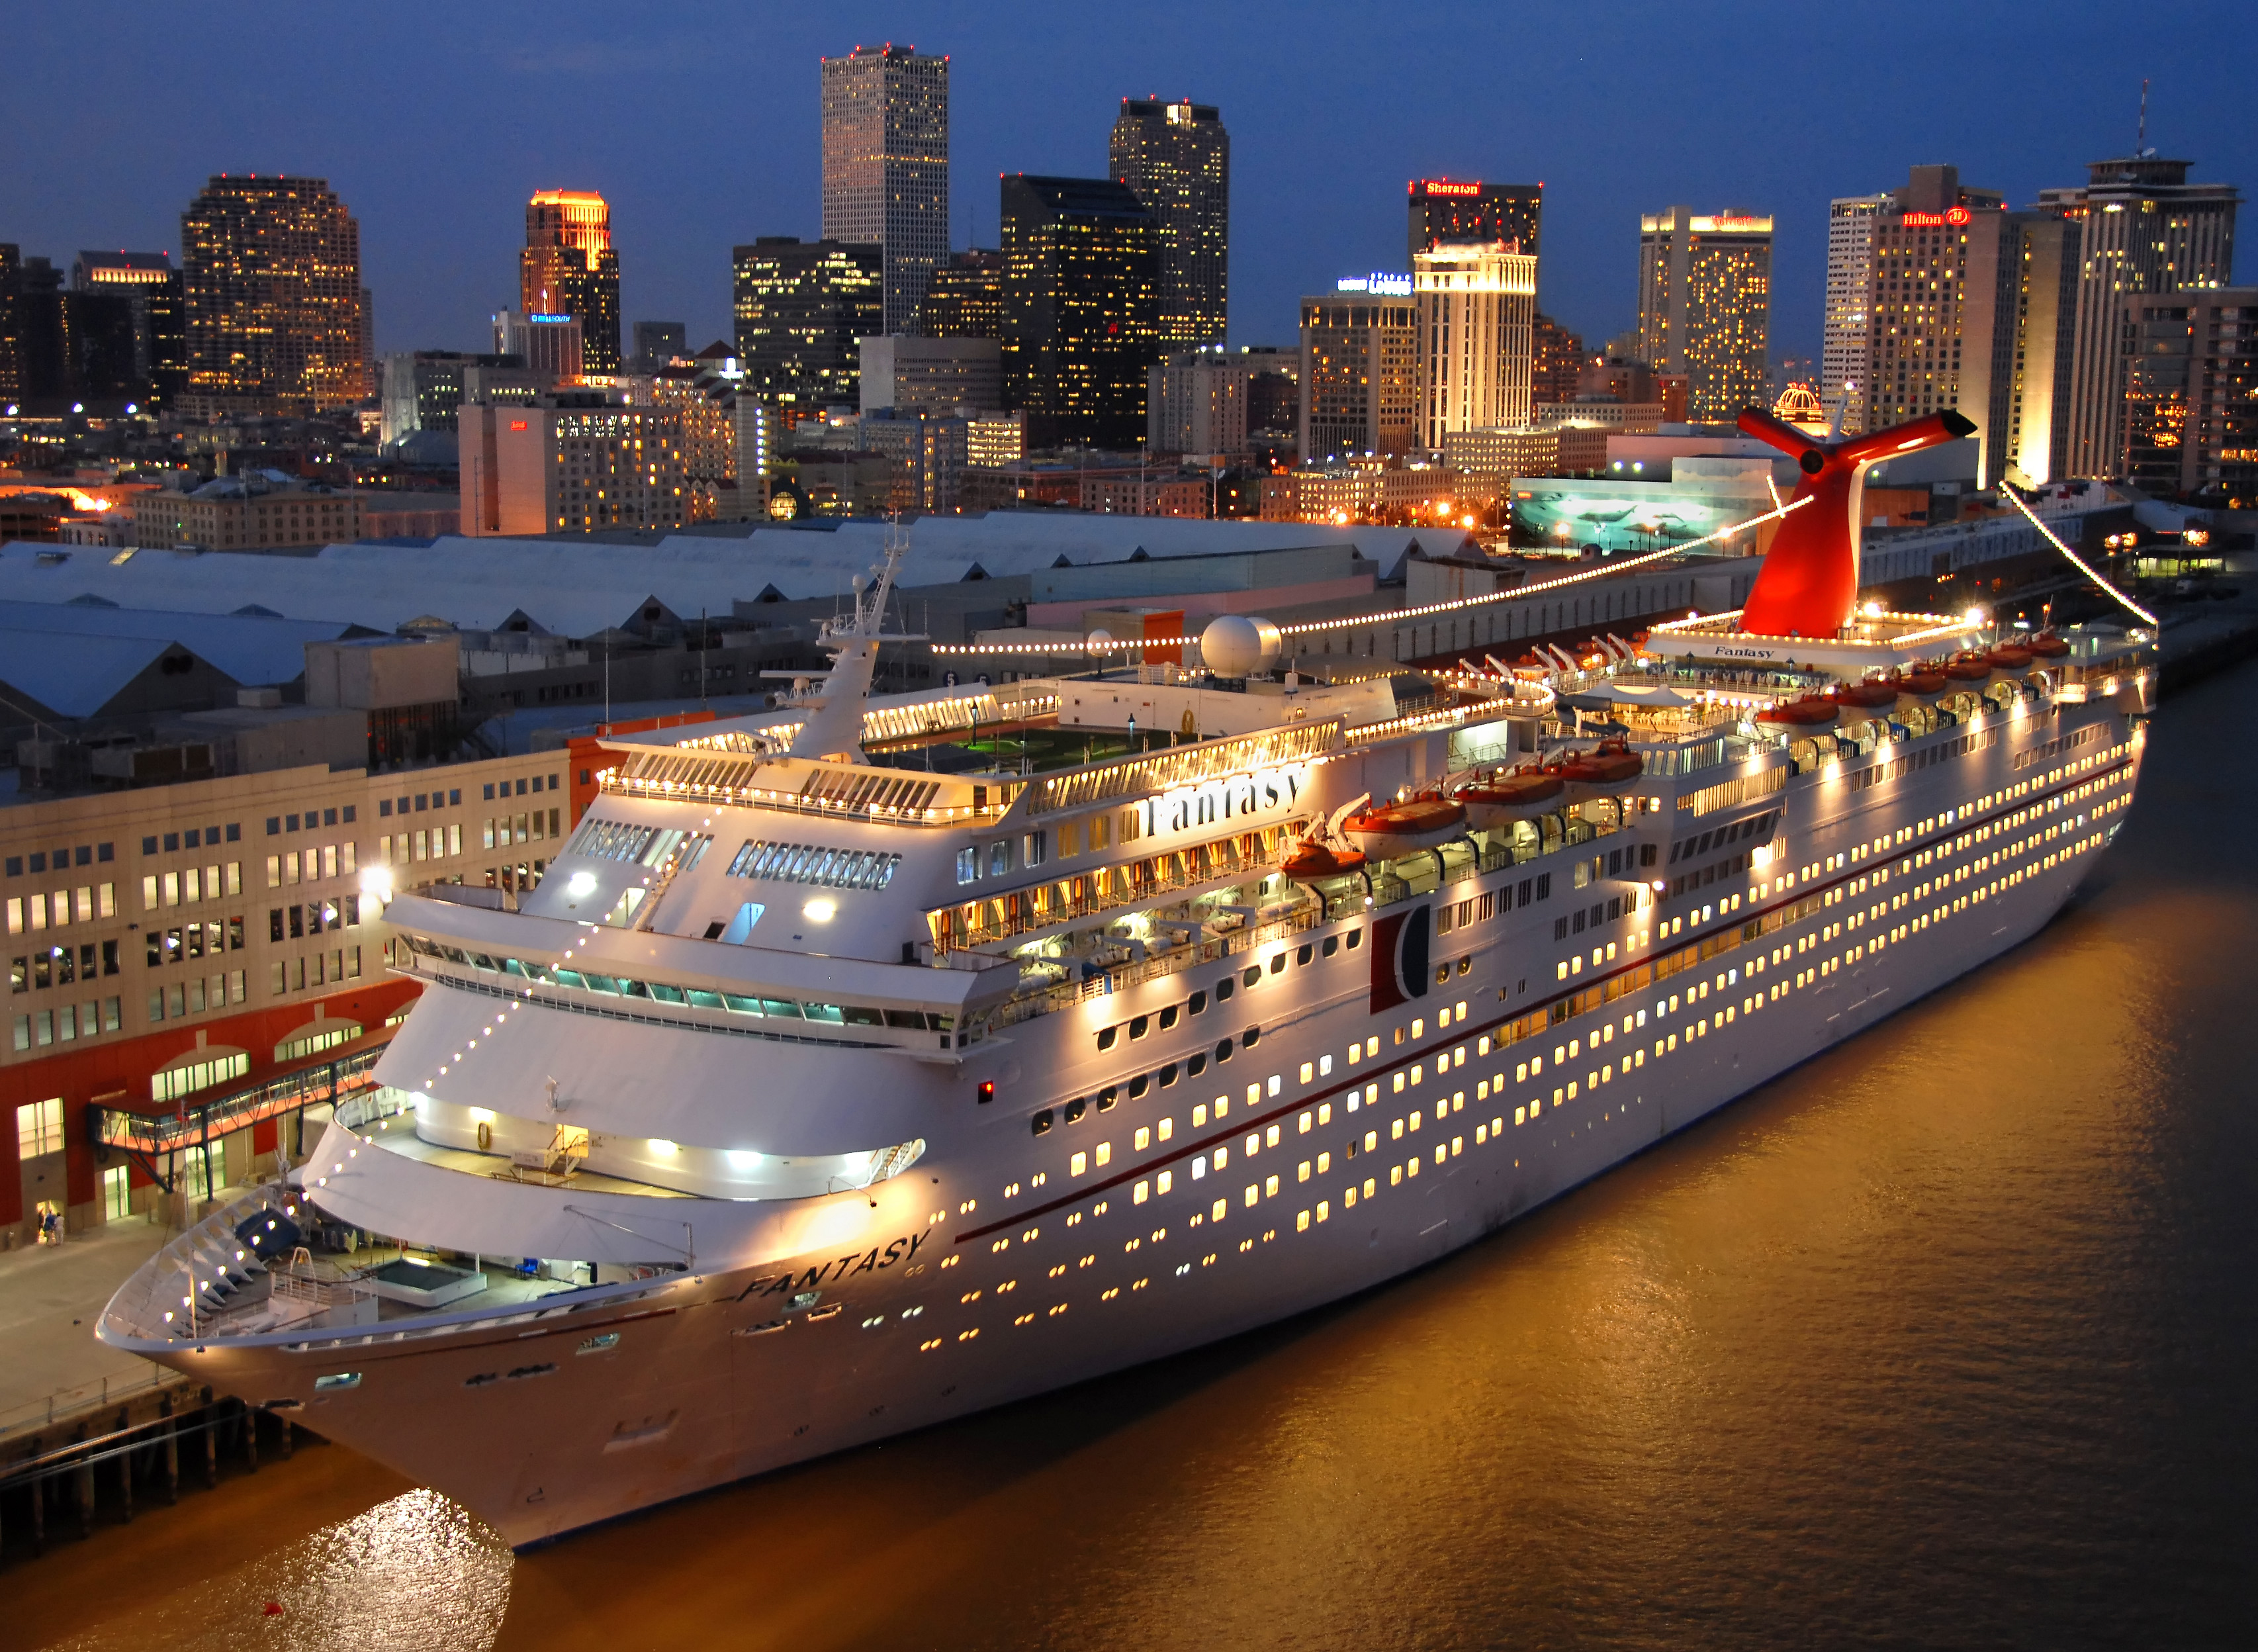 Cruise Ship Beautiful Wallpapers High Definition All Hd Wallpapers